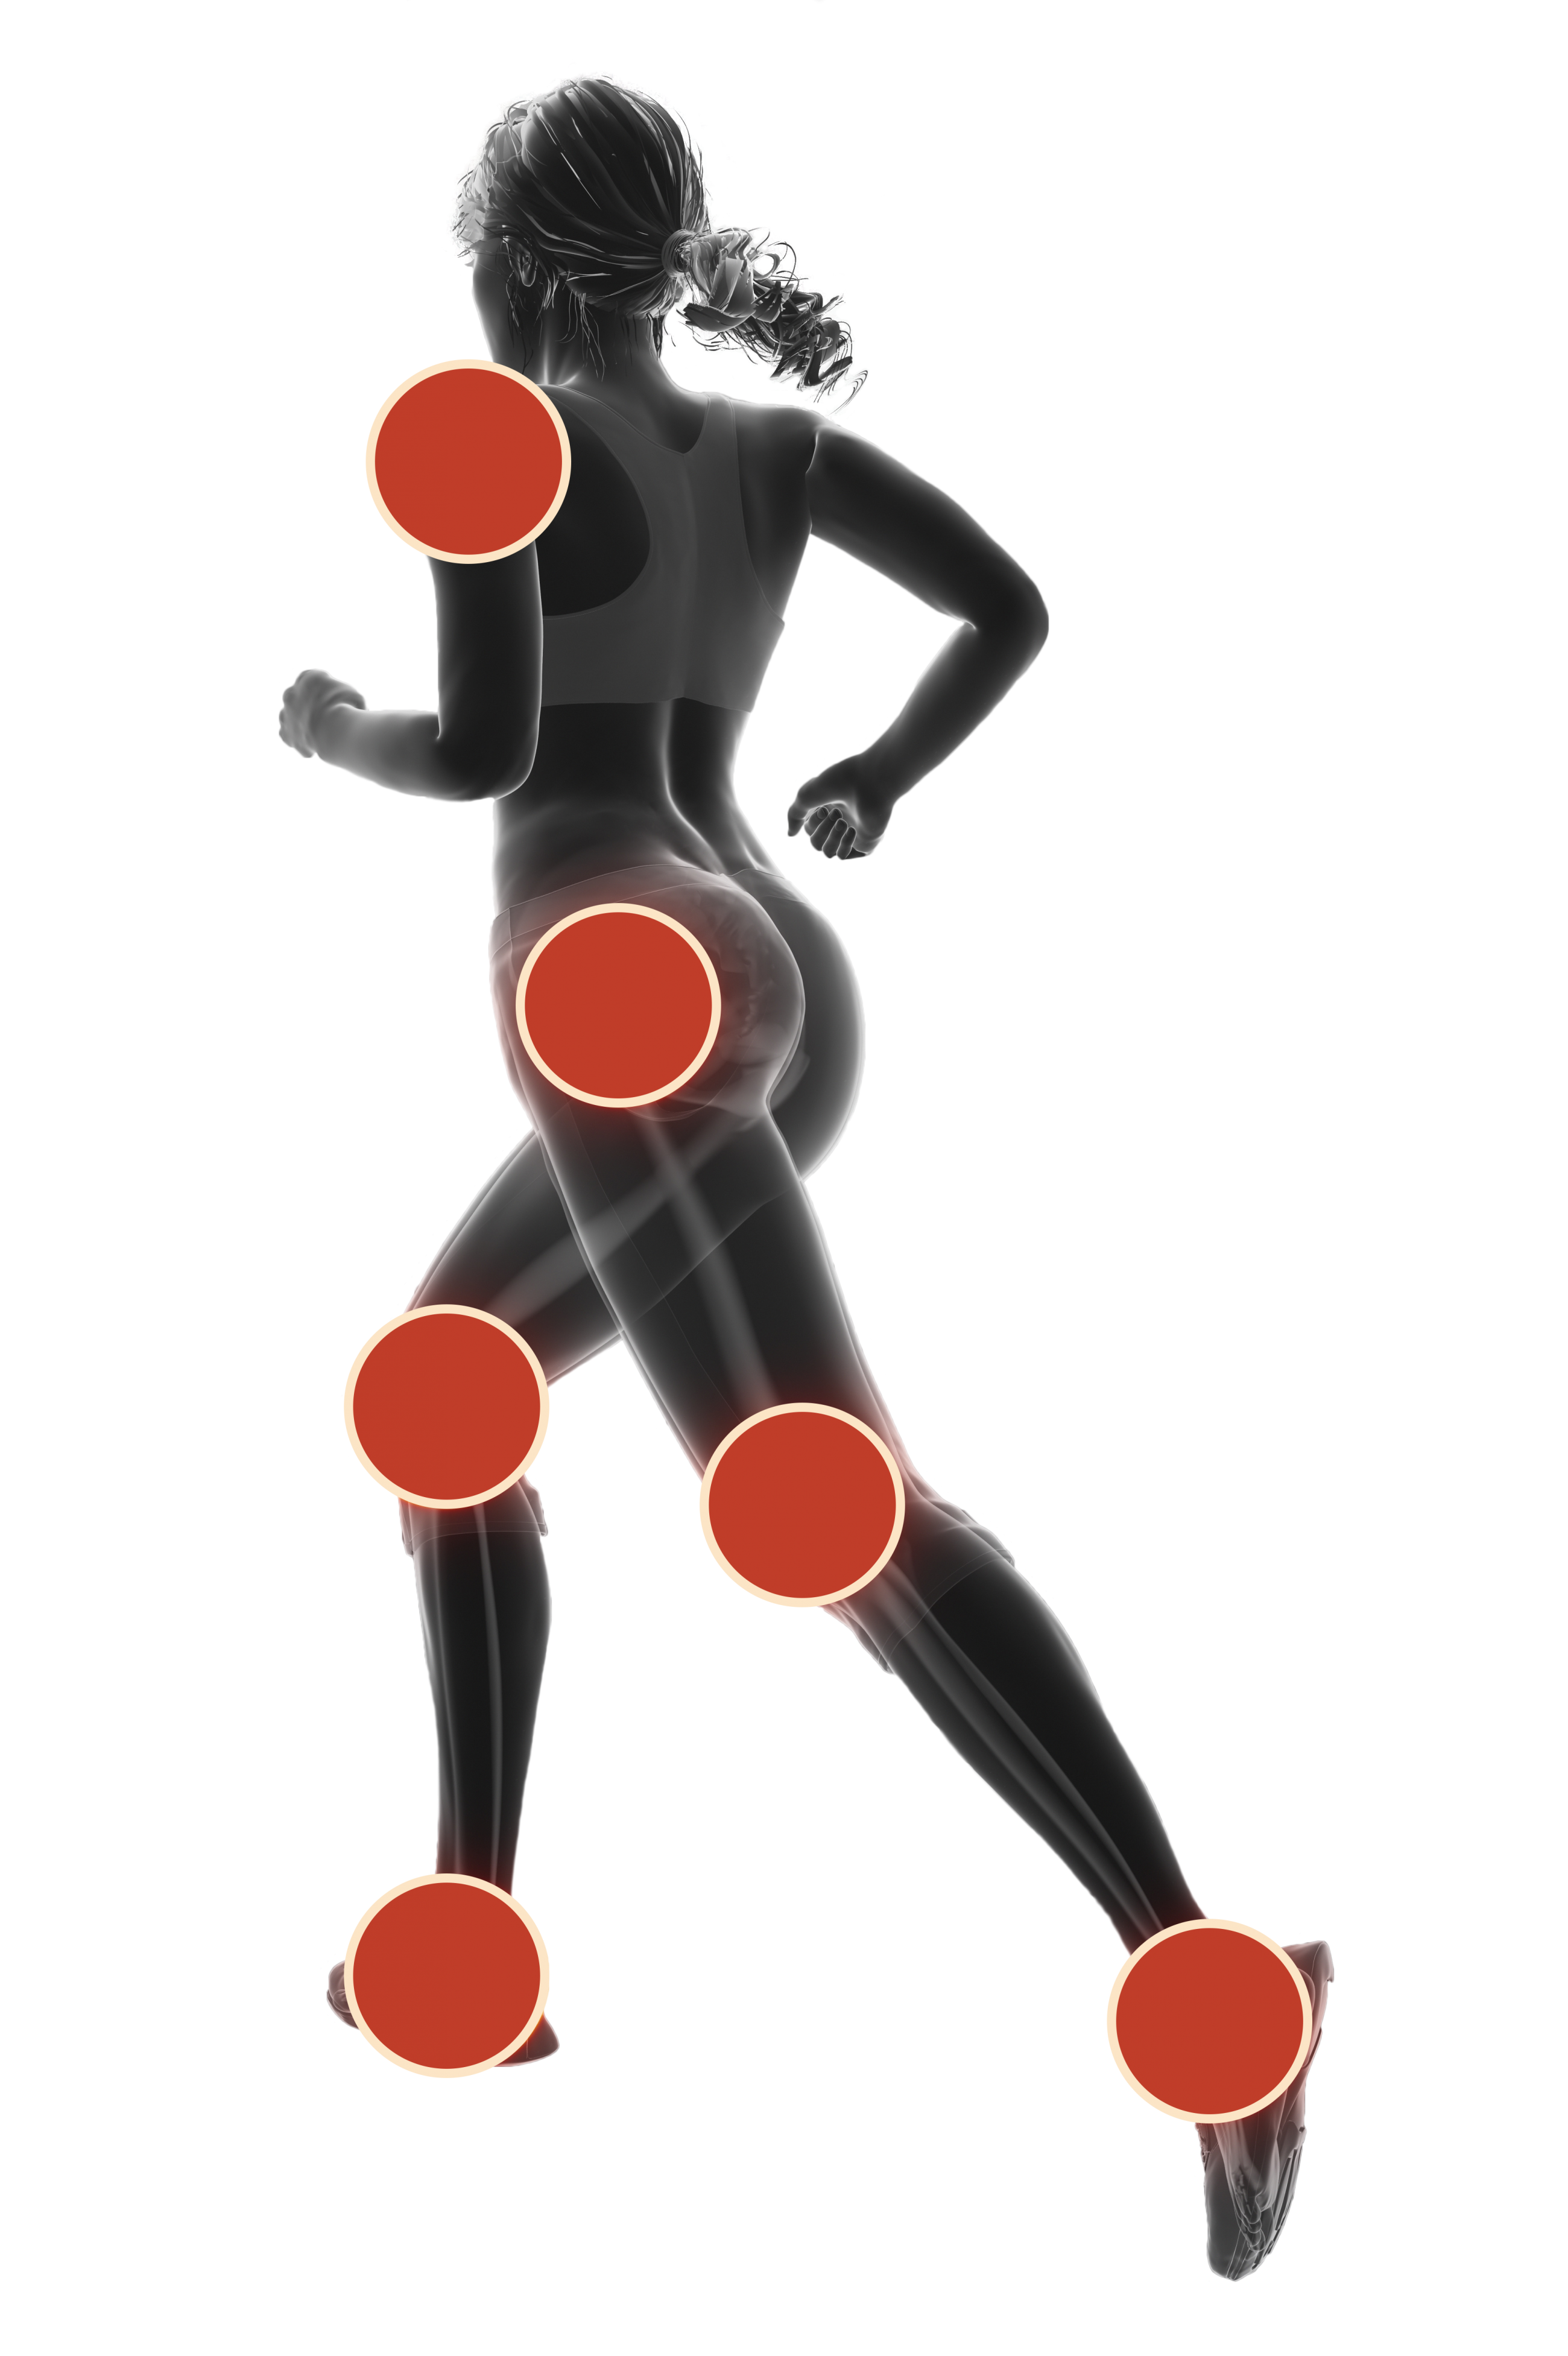 A body silhouette of an athlete with points depicting how balance training with TENDO Barbell De-Stabilizer by Tendo Sport will strengthen joint stability and protect ankles, knees, hips, and shoulders.